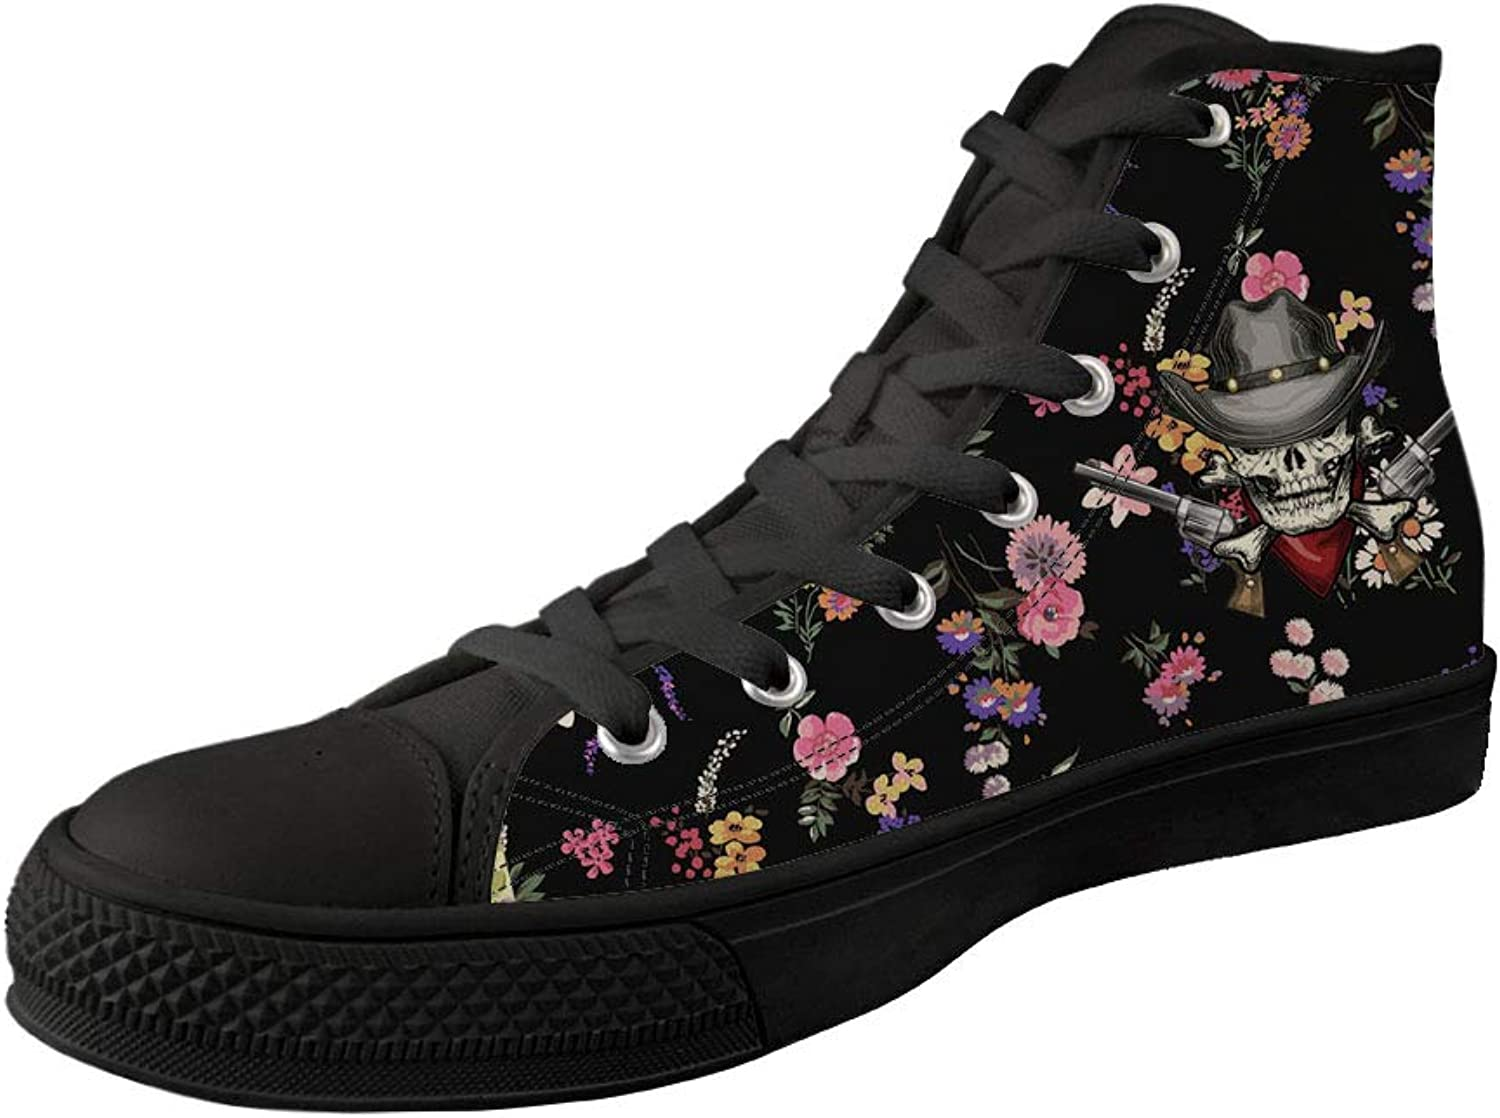 FUSURIRE Unsex Skull shoes for Men Women Fashion Sneakers High Top Floral Print colorful shoes